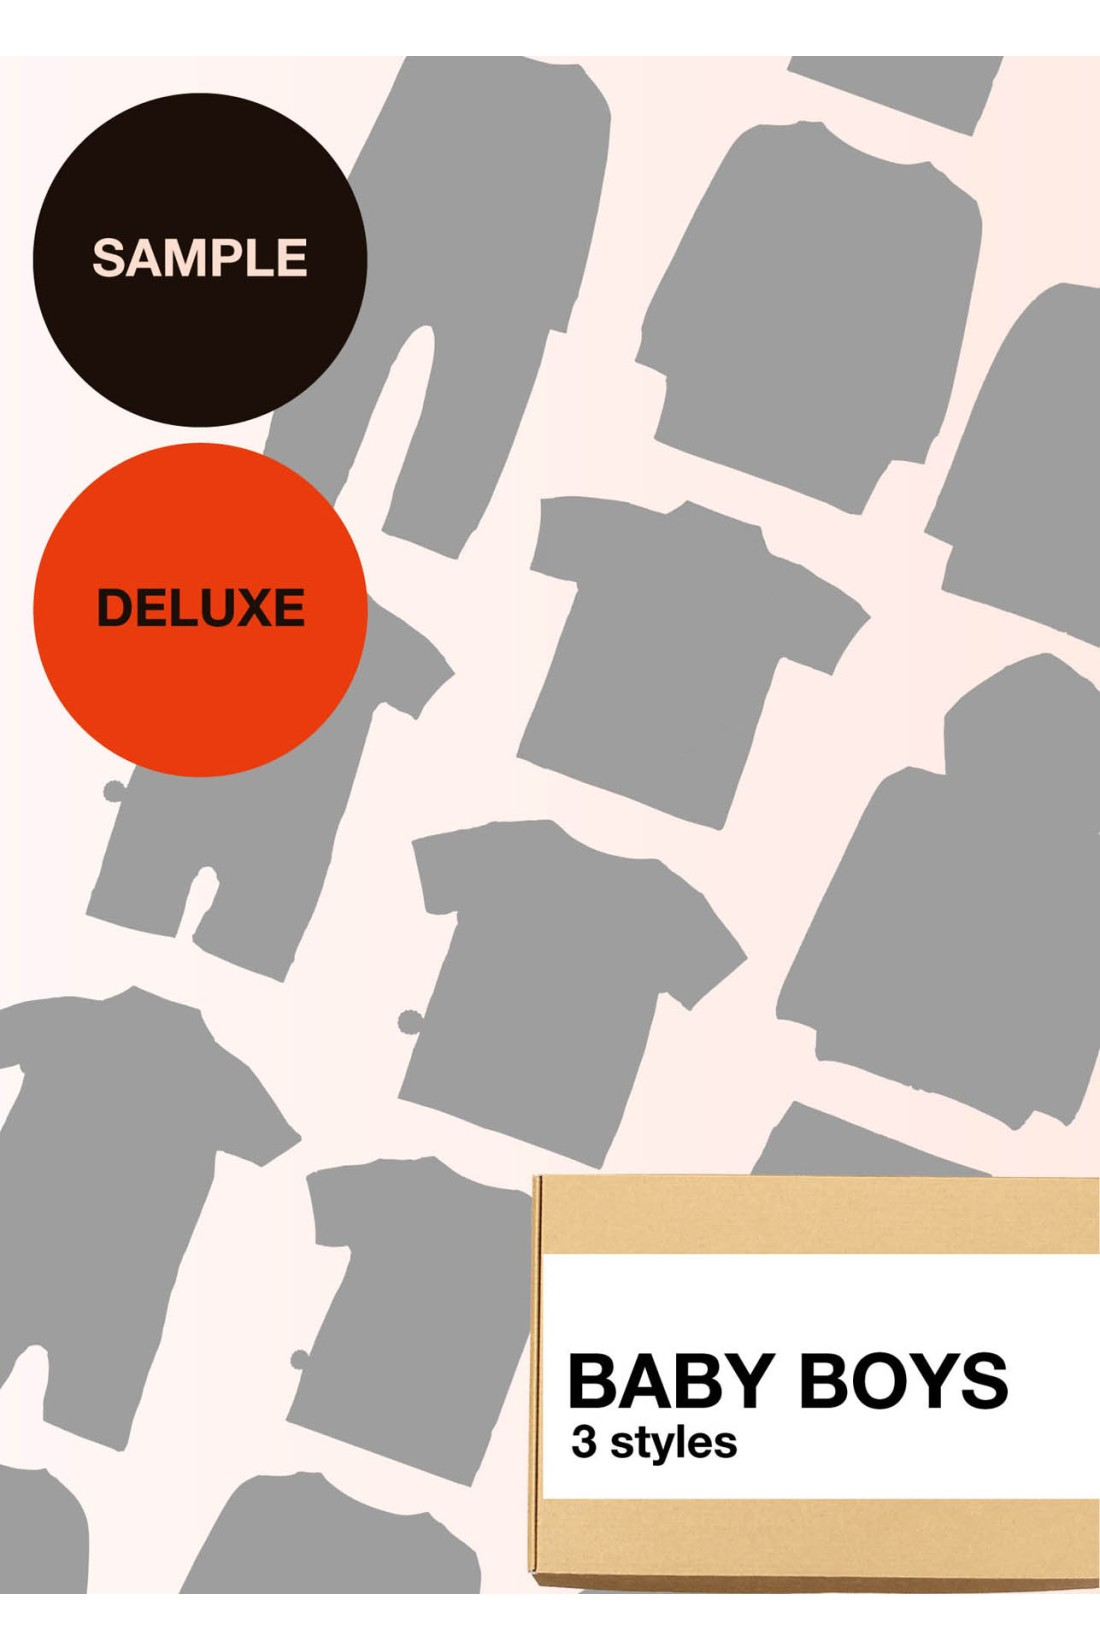 Sample Surprise Box Baby Boy Deluxe - 3 Styles